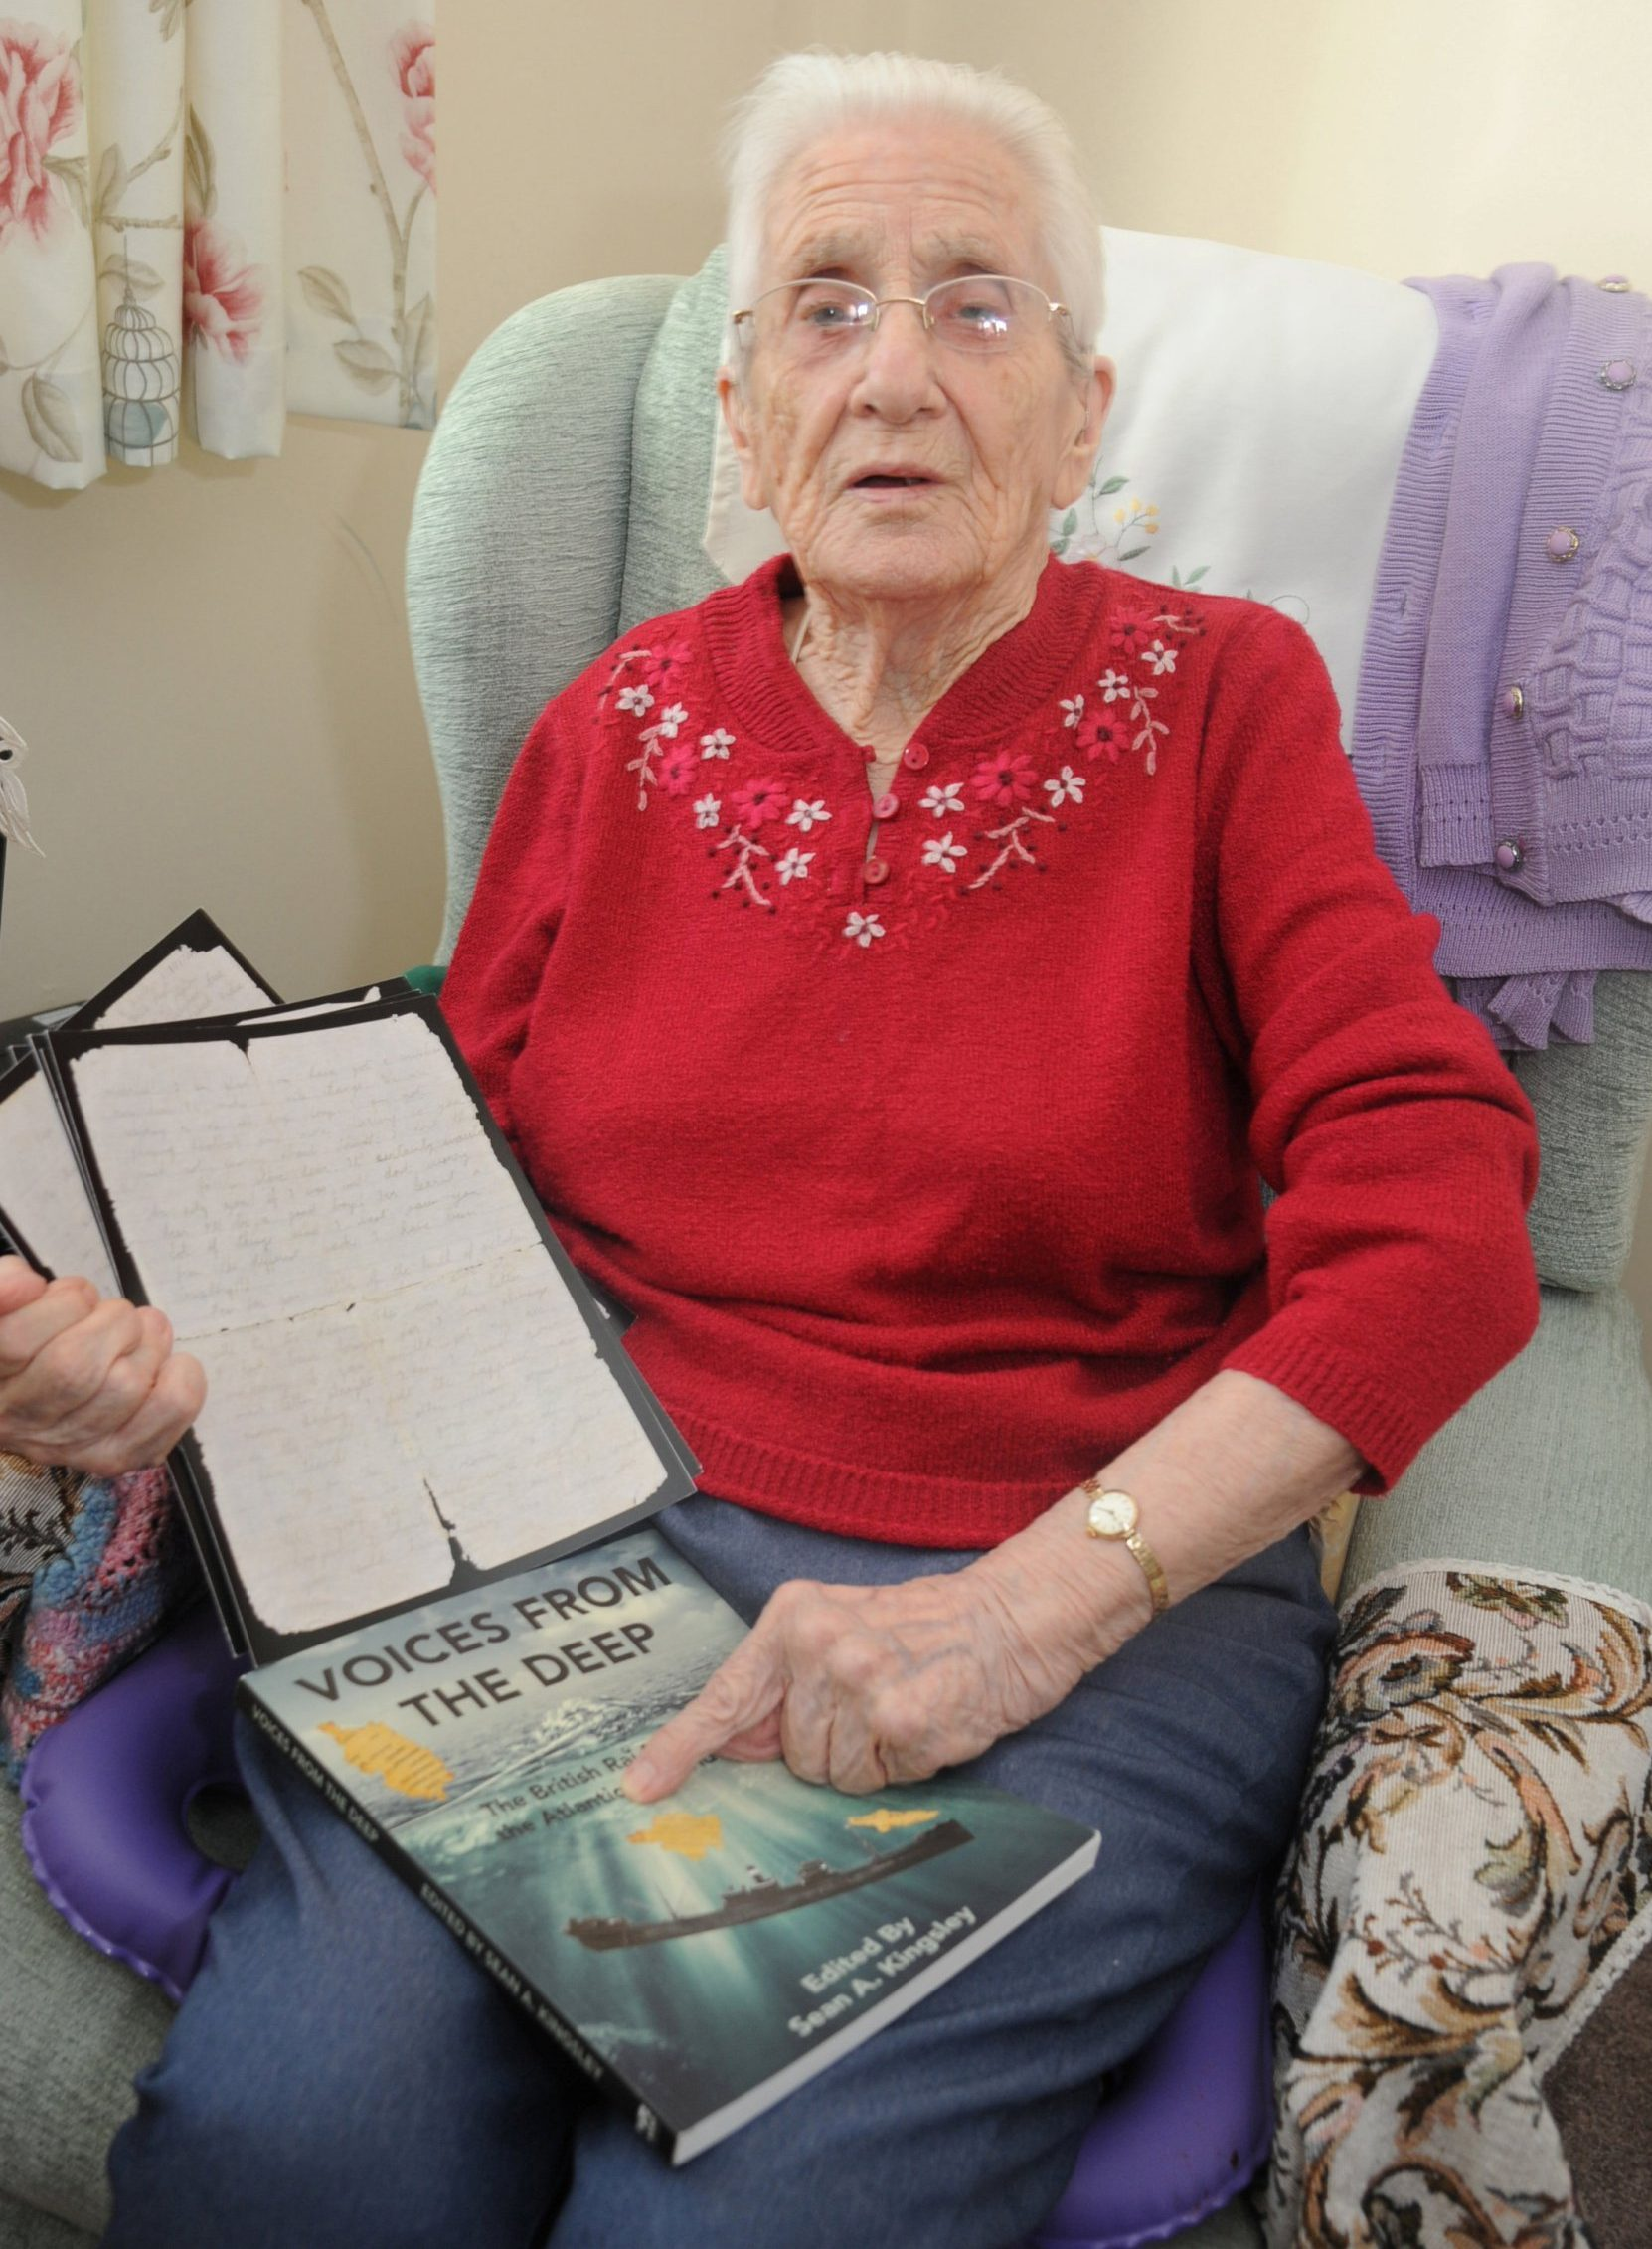 Finally delivered Phyllis Ponting with her love letters that were lost at sea after the boat was torpedoed in World War two. See SWNS story SWBRletter - Grandmother aged 99 receives a love letter from her wartime fiance he wrote .. 70-years-ago. A great grandmother aged 99 has received a love letter written by her Second World War fiance 77 years after he wrote it. Phyllis Ponting, from Wilts., has finally read a hand-written love letter from her soldier fiance which was lost at sea for almost 80 years. The 99-year-old gave up hope of ever hearing from her beloved Bill Walker, serving in India, after he never answered her letter accepting his proposal of marriage. But incredibly - 77 years after he wrote his reply - it has been found at the bottom of the sea. The letter has laid deep underwater for almost 80 years when the cargo ship transporting it to Britain was sunk off the coast of Galway by German U-boats in 1941. No one knows if Mr Walker survived the India conflict, and heartbroken Phyllis, whose maiden name was Aldridge, went on to find happiness with Jim Holloway. The pair married, and the couple had four children but for years, Phyllis forever wondered what happened to long-lost Bill.